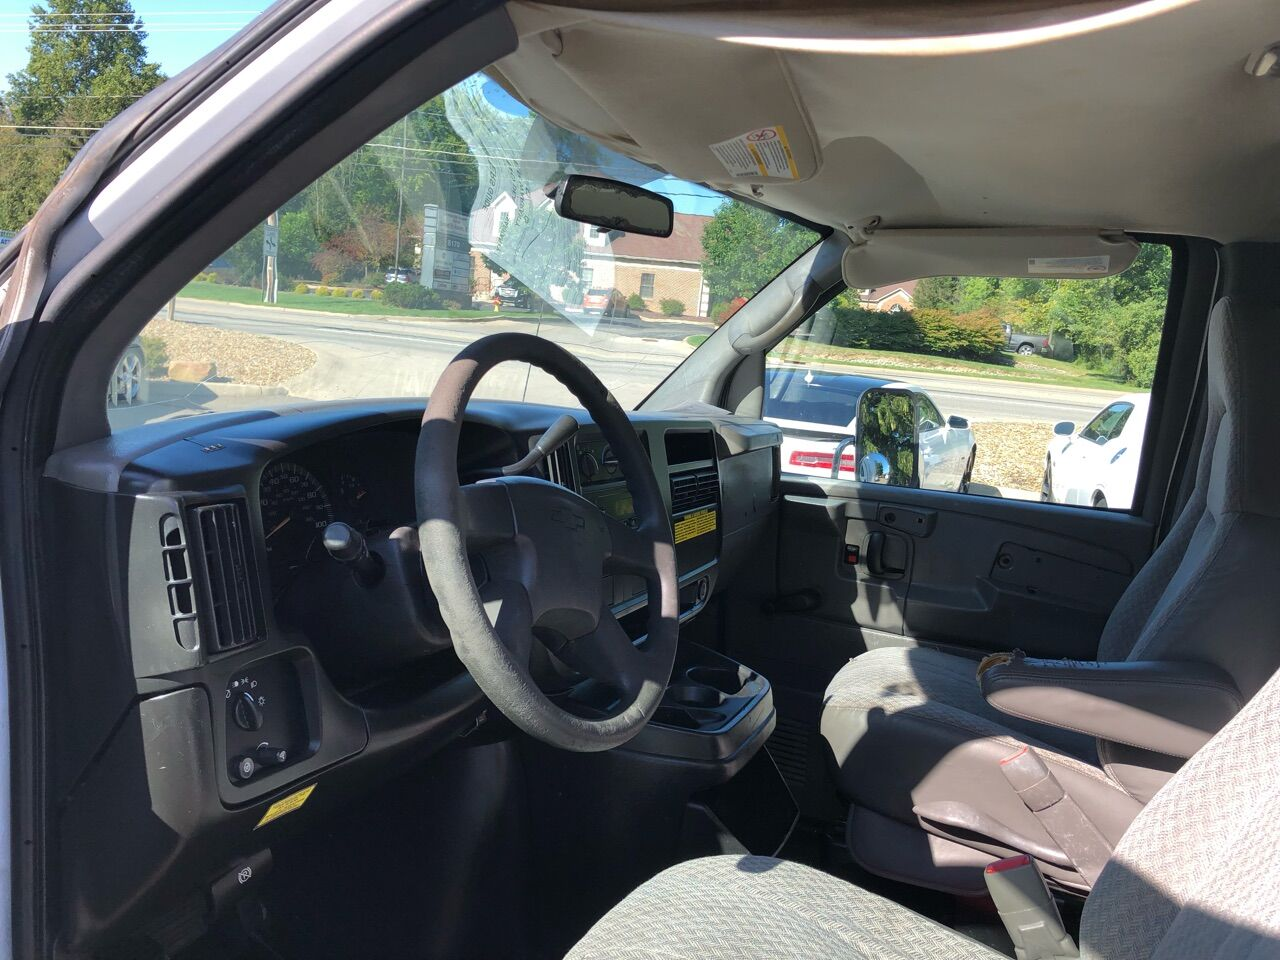 2006 Chevrolet Express Cutaway Specialty Vehicle